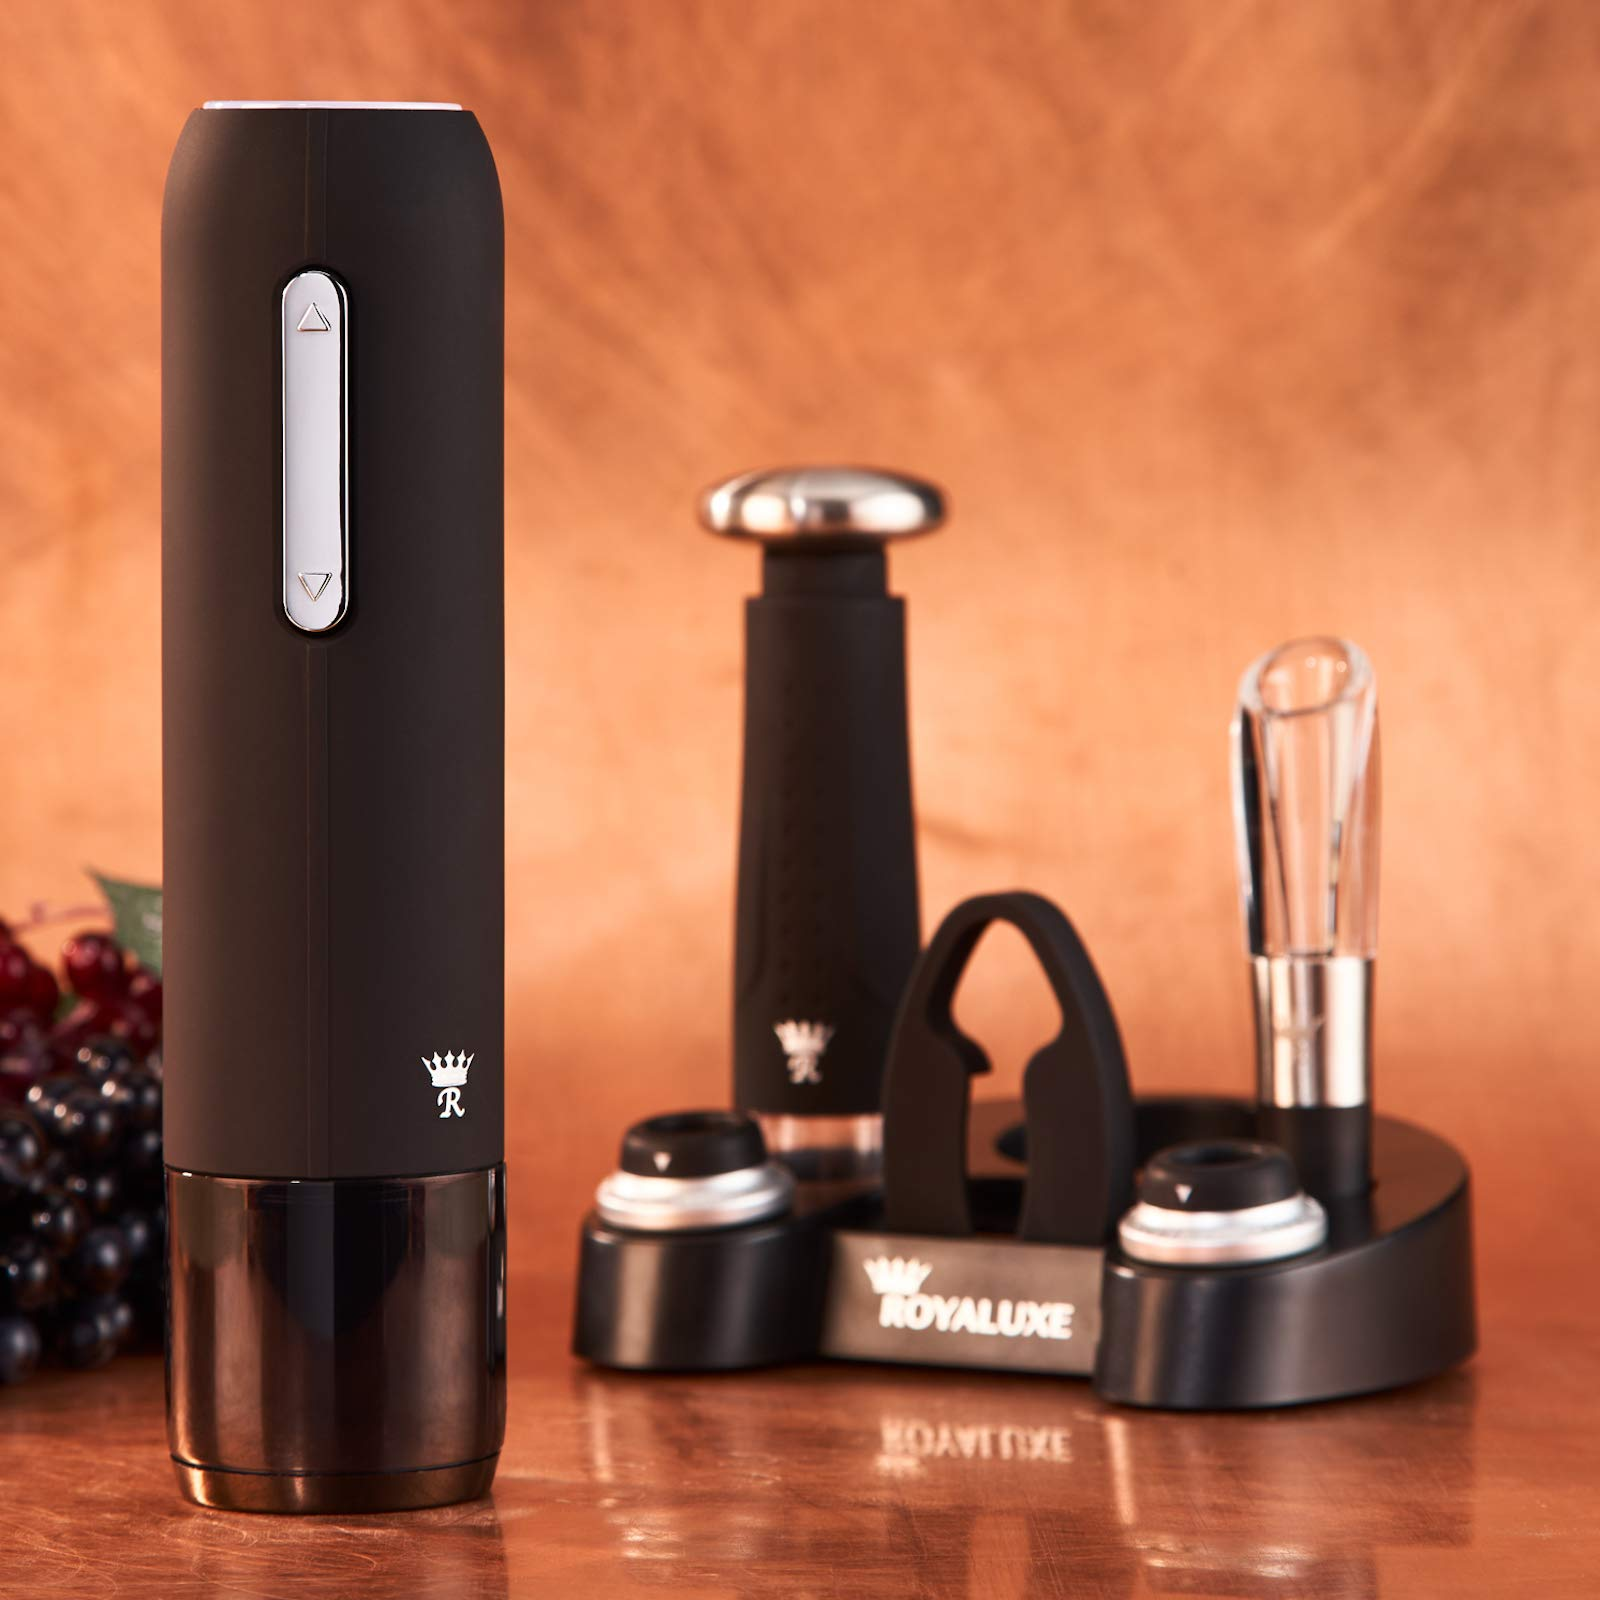 Royaluxe - Deluxe 7 Piece Electric Wine Opener Gift Set | Rechargeable Wine Bottle Opener with Aerator, Premium Wine Preservation Vacuum System, 2 Bottle Stoppers, Foil Cutter & Charging Base | Elegant Matte Black Finish with Stainless Steel Accents by Royaluxe (Image #8)